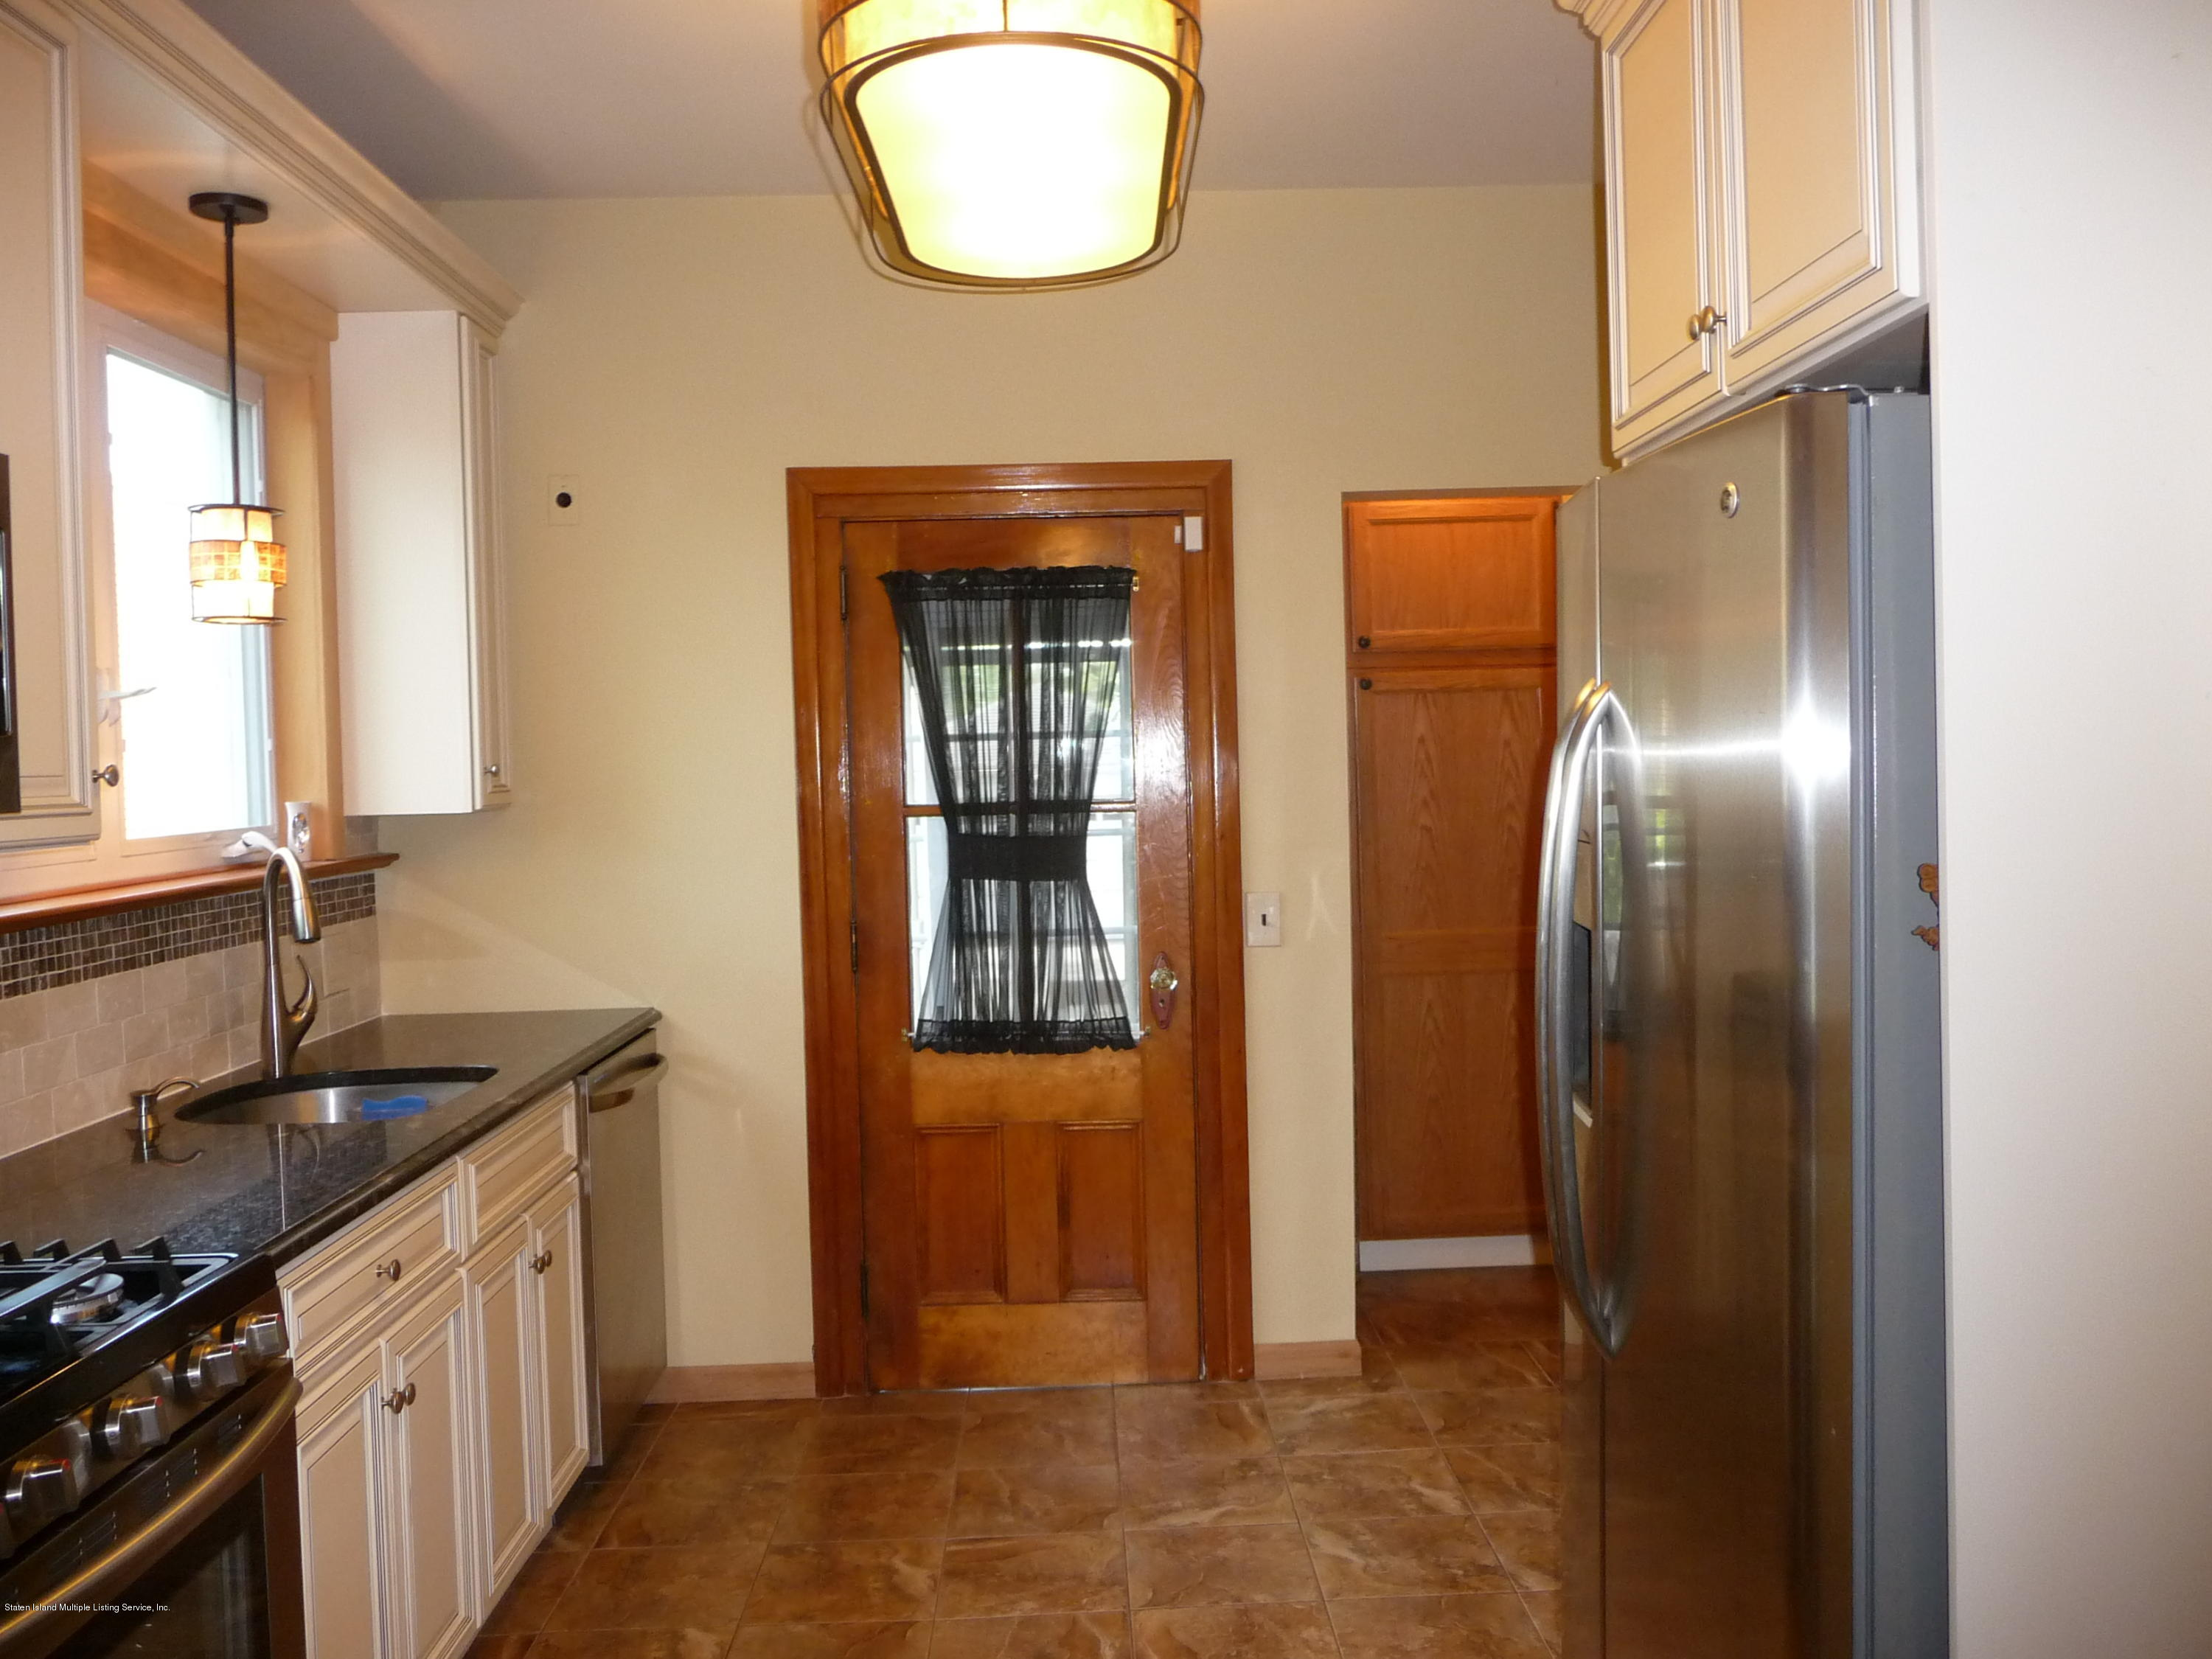 Single Family - Detached 77 Todt Hill Road  Staten Island, NY 10314, MLS-1129718-18